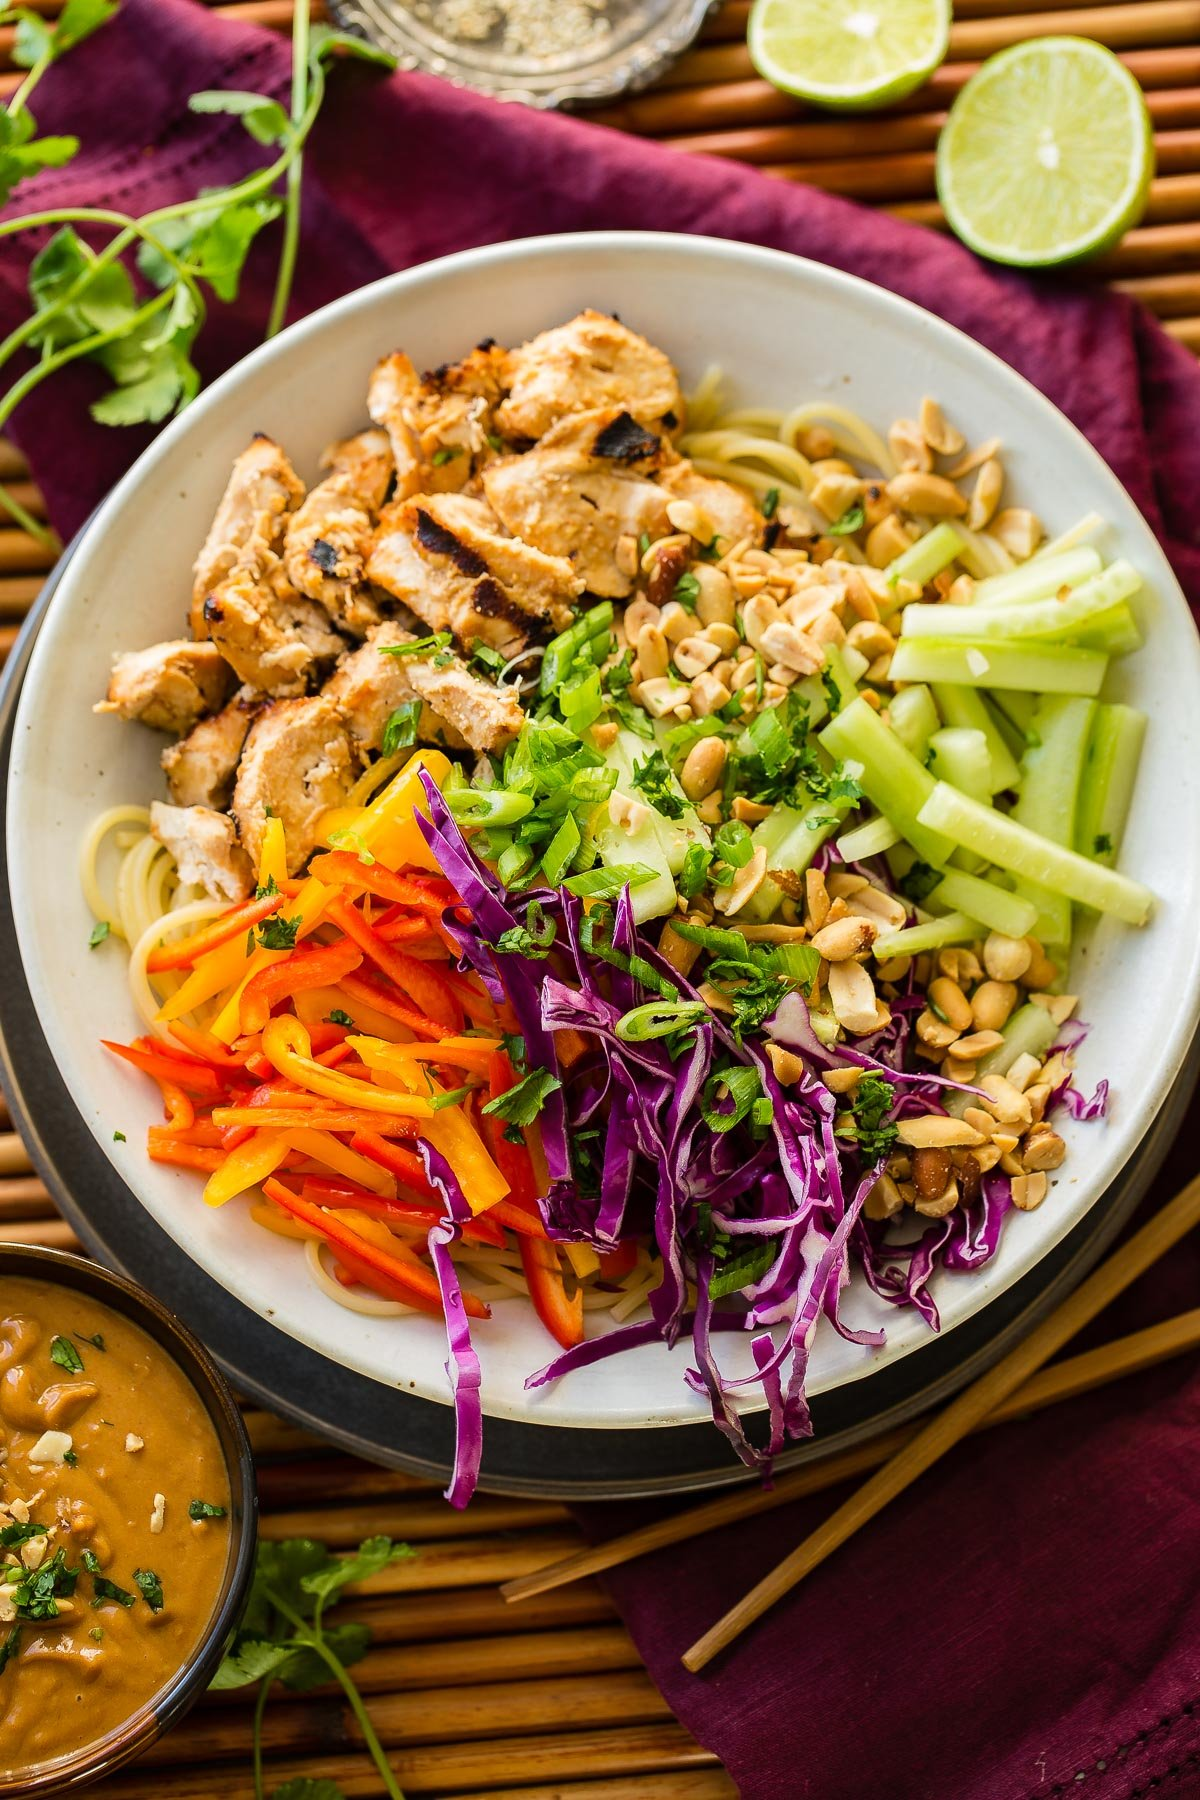 Making Thai peanut sauce is easier than any other Asian inspired recipe I've tried and these Thai peanut sauce noodles and chicken are the best way to start! ohsweetbasil.com